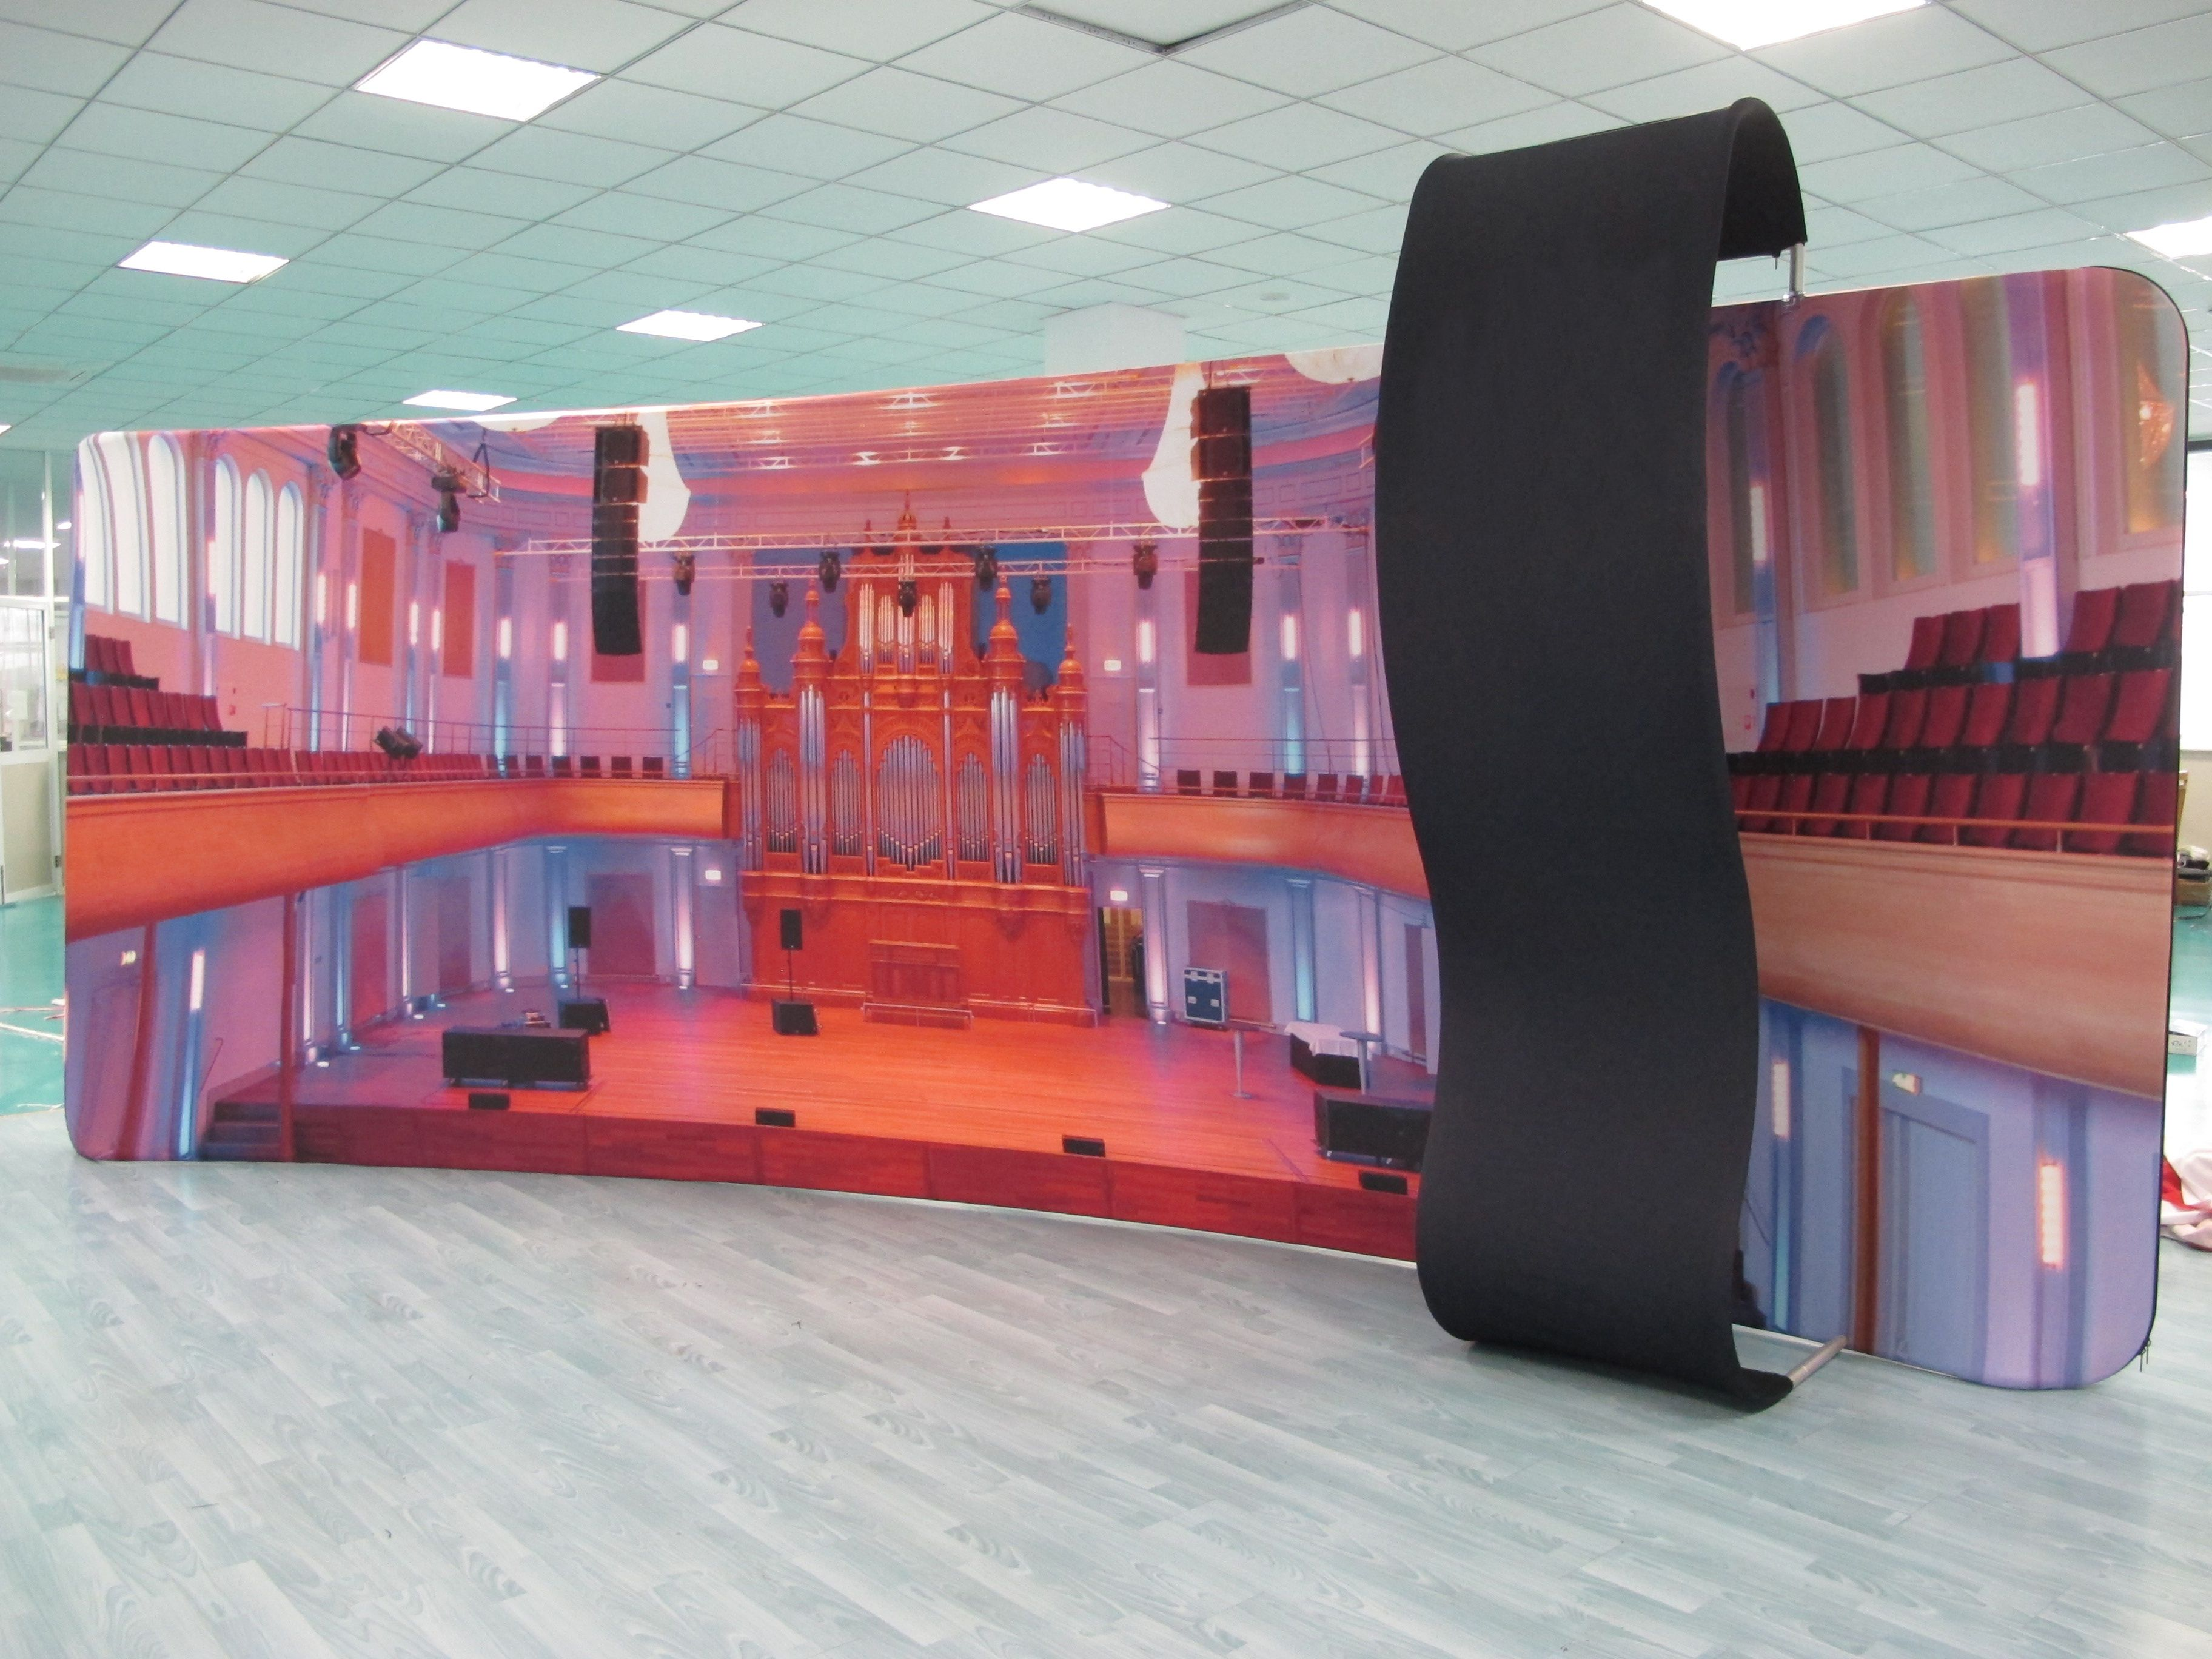 Hot sale tension fabric display stand 3D-dj600-003 of Hawk Display.  Features: hot sale display stand, easy to install and disassemble, vivid graphics, customized graphics and sizes.